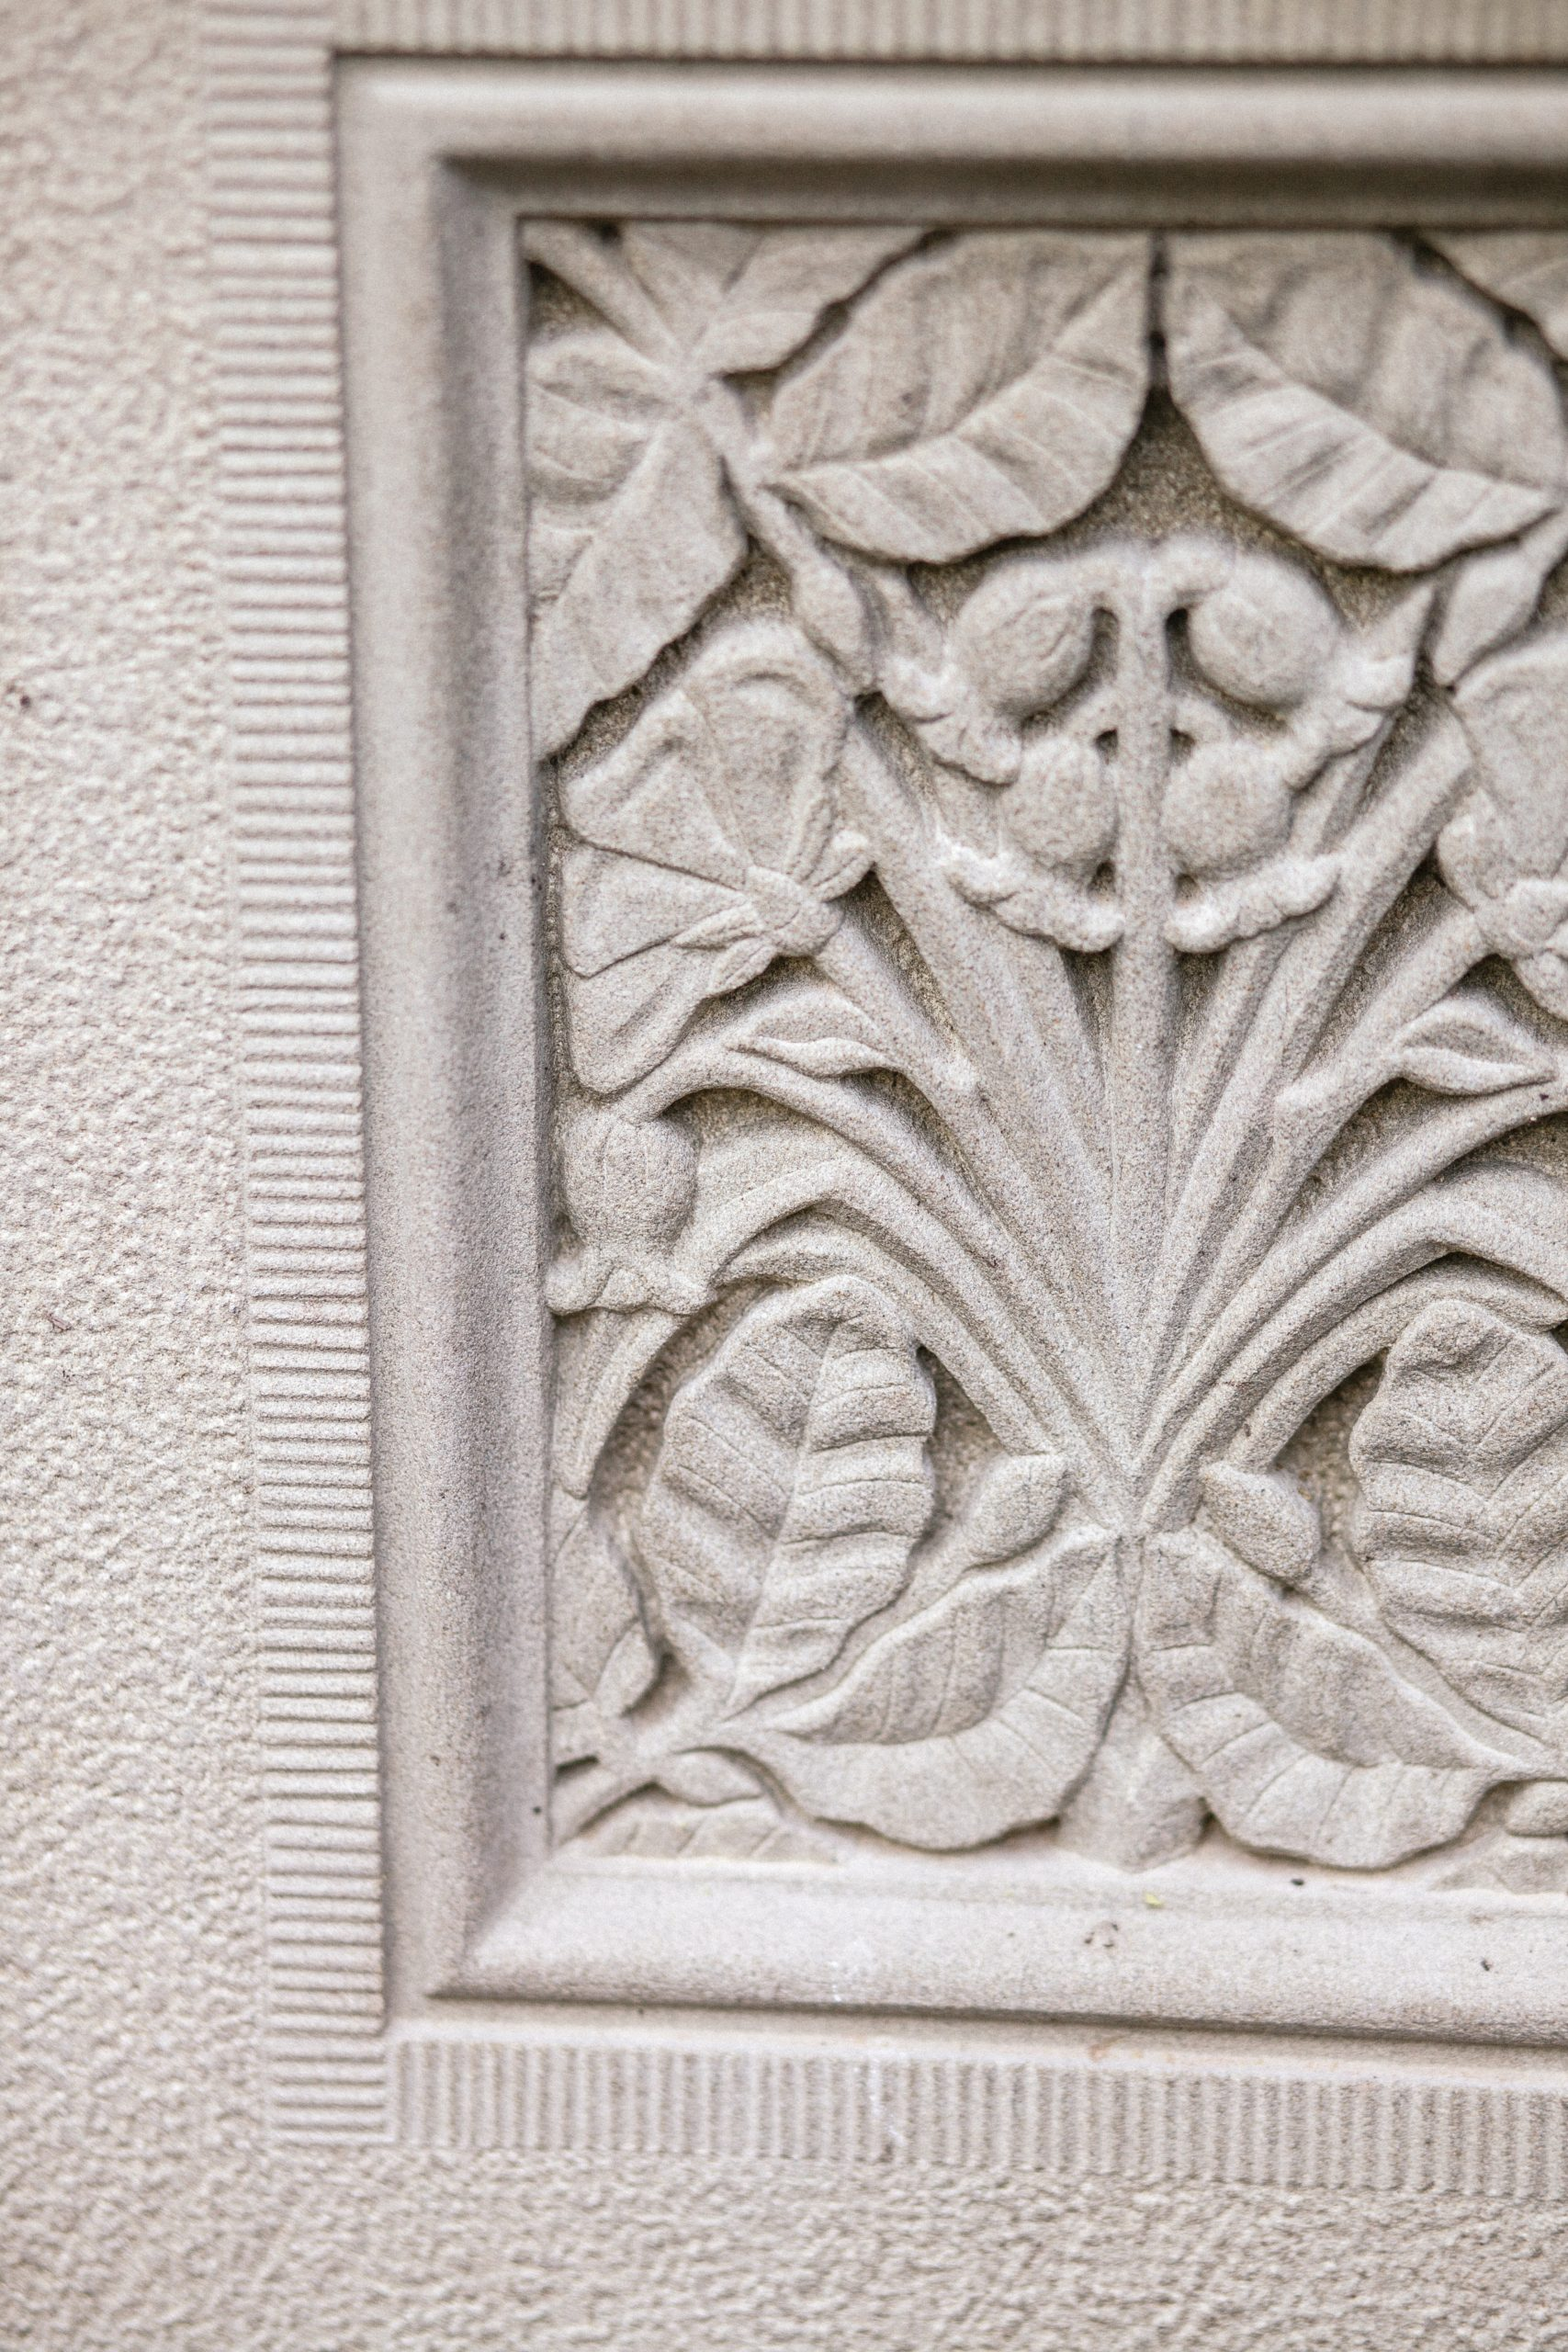 Stone carving of beech leaves and dog roses